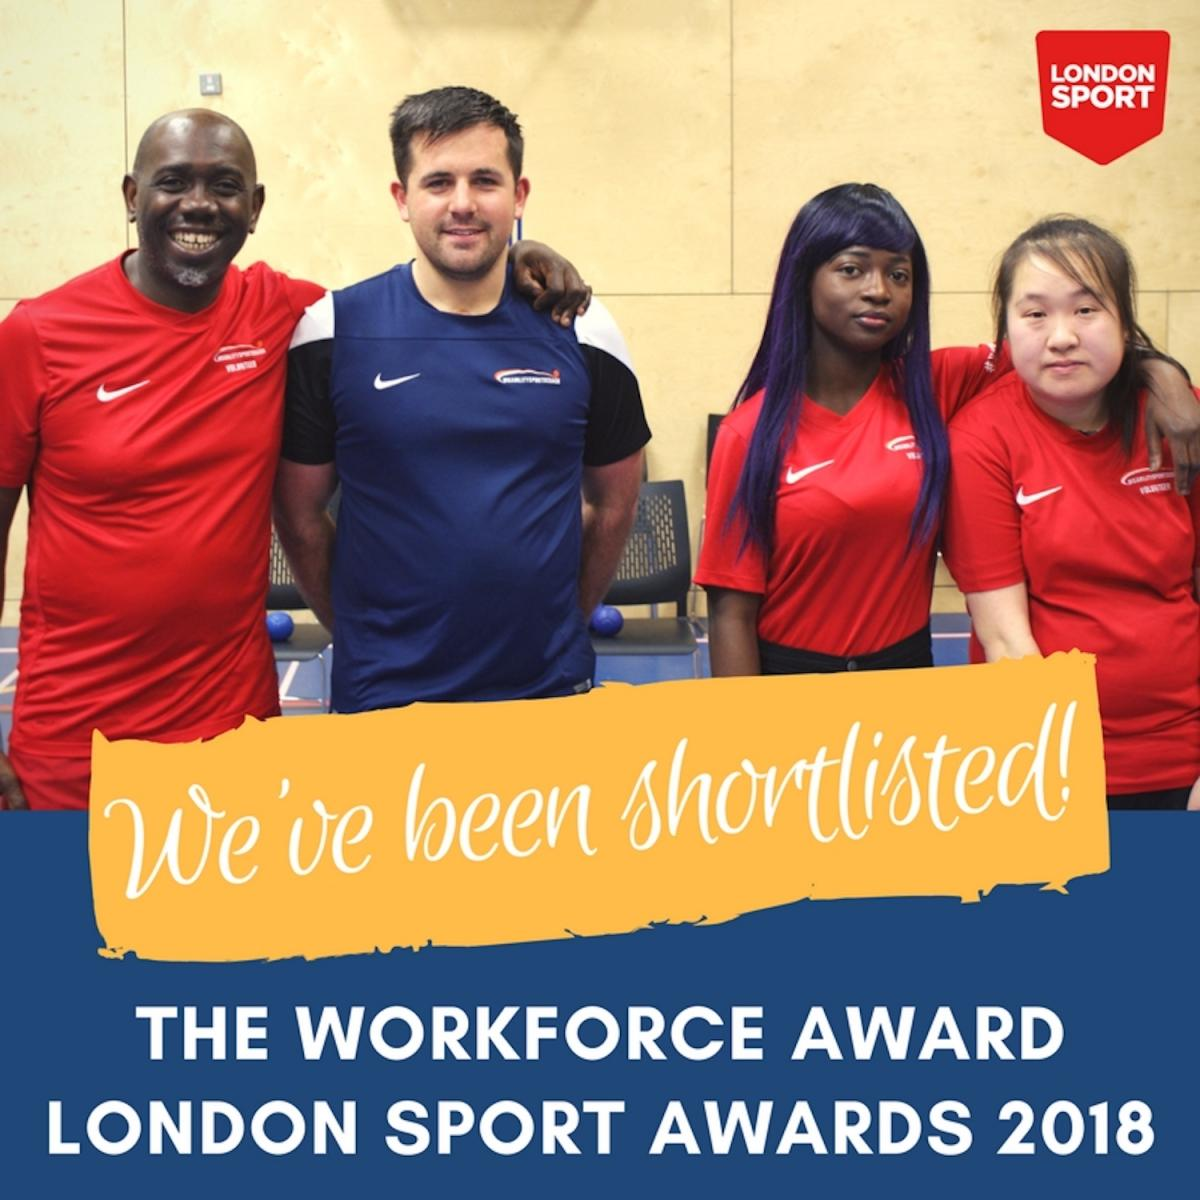 London Sport Awards 2018 - Workforce Award - Disability Sports Coach